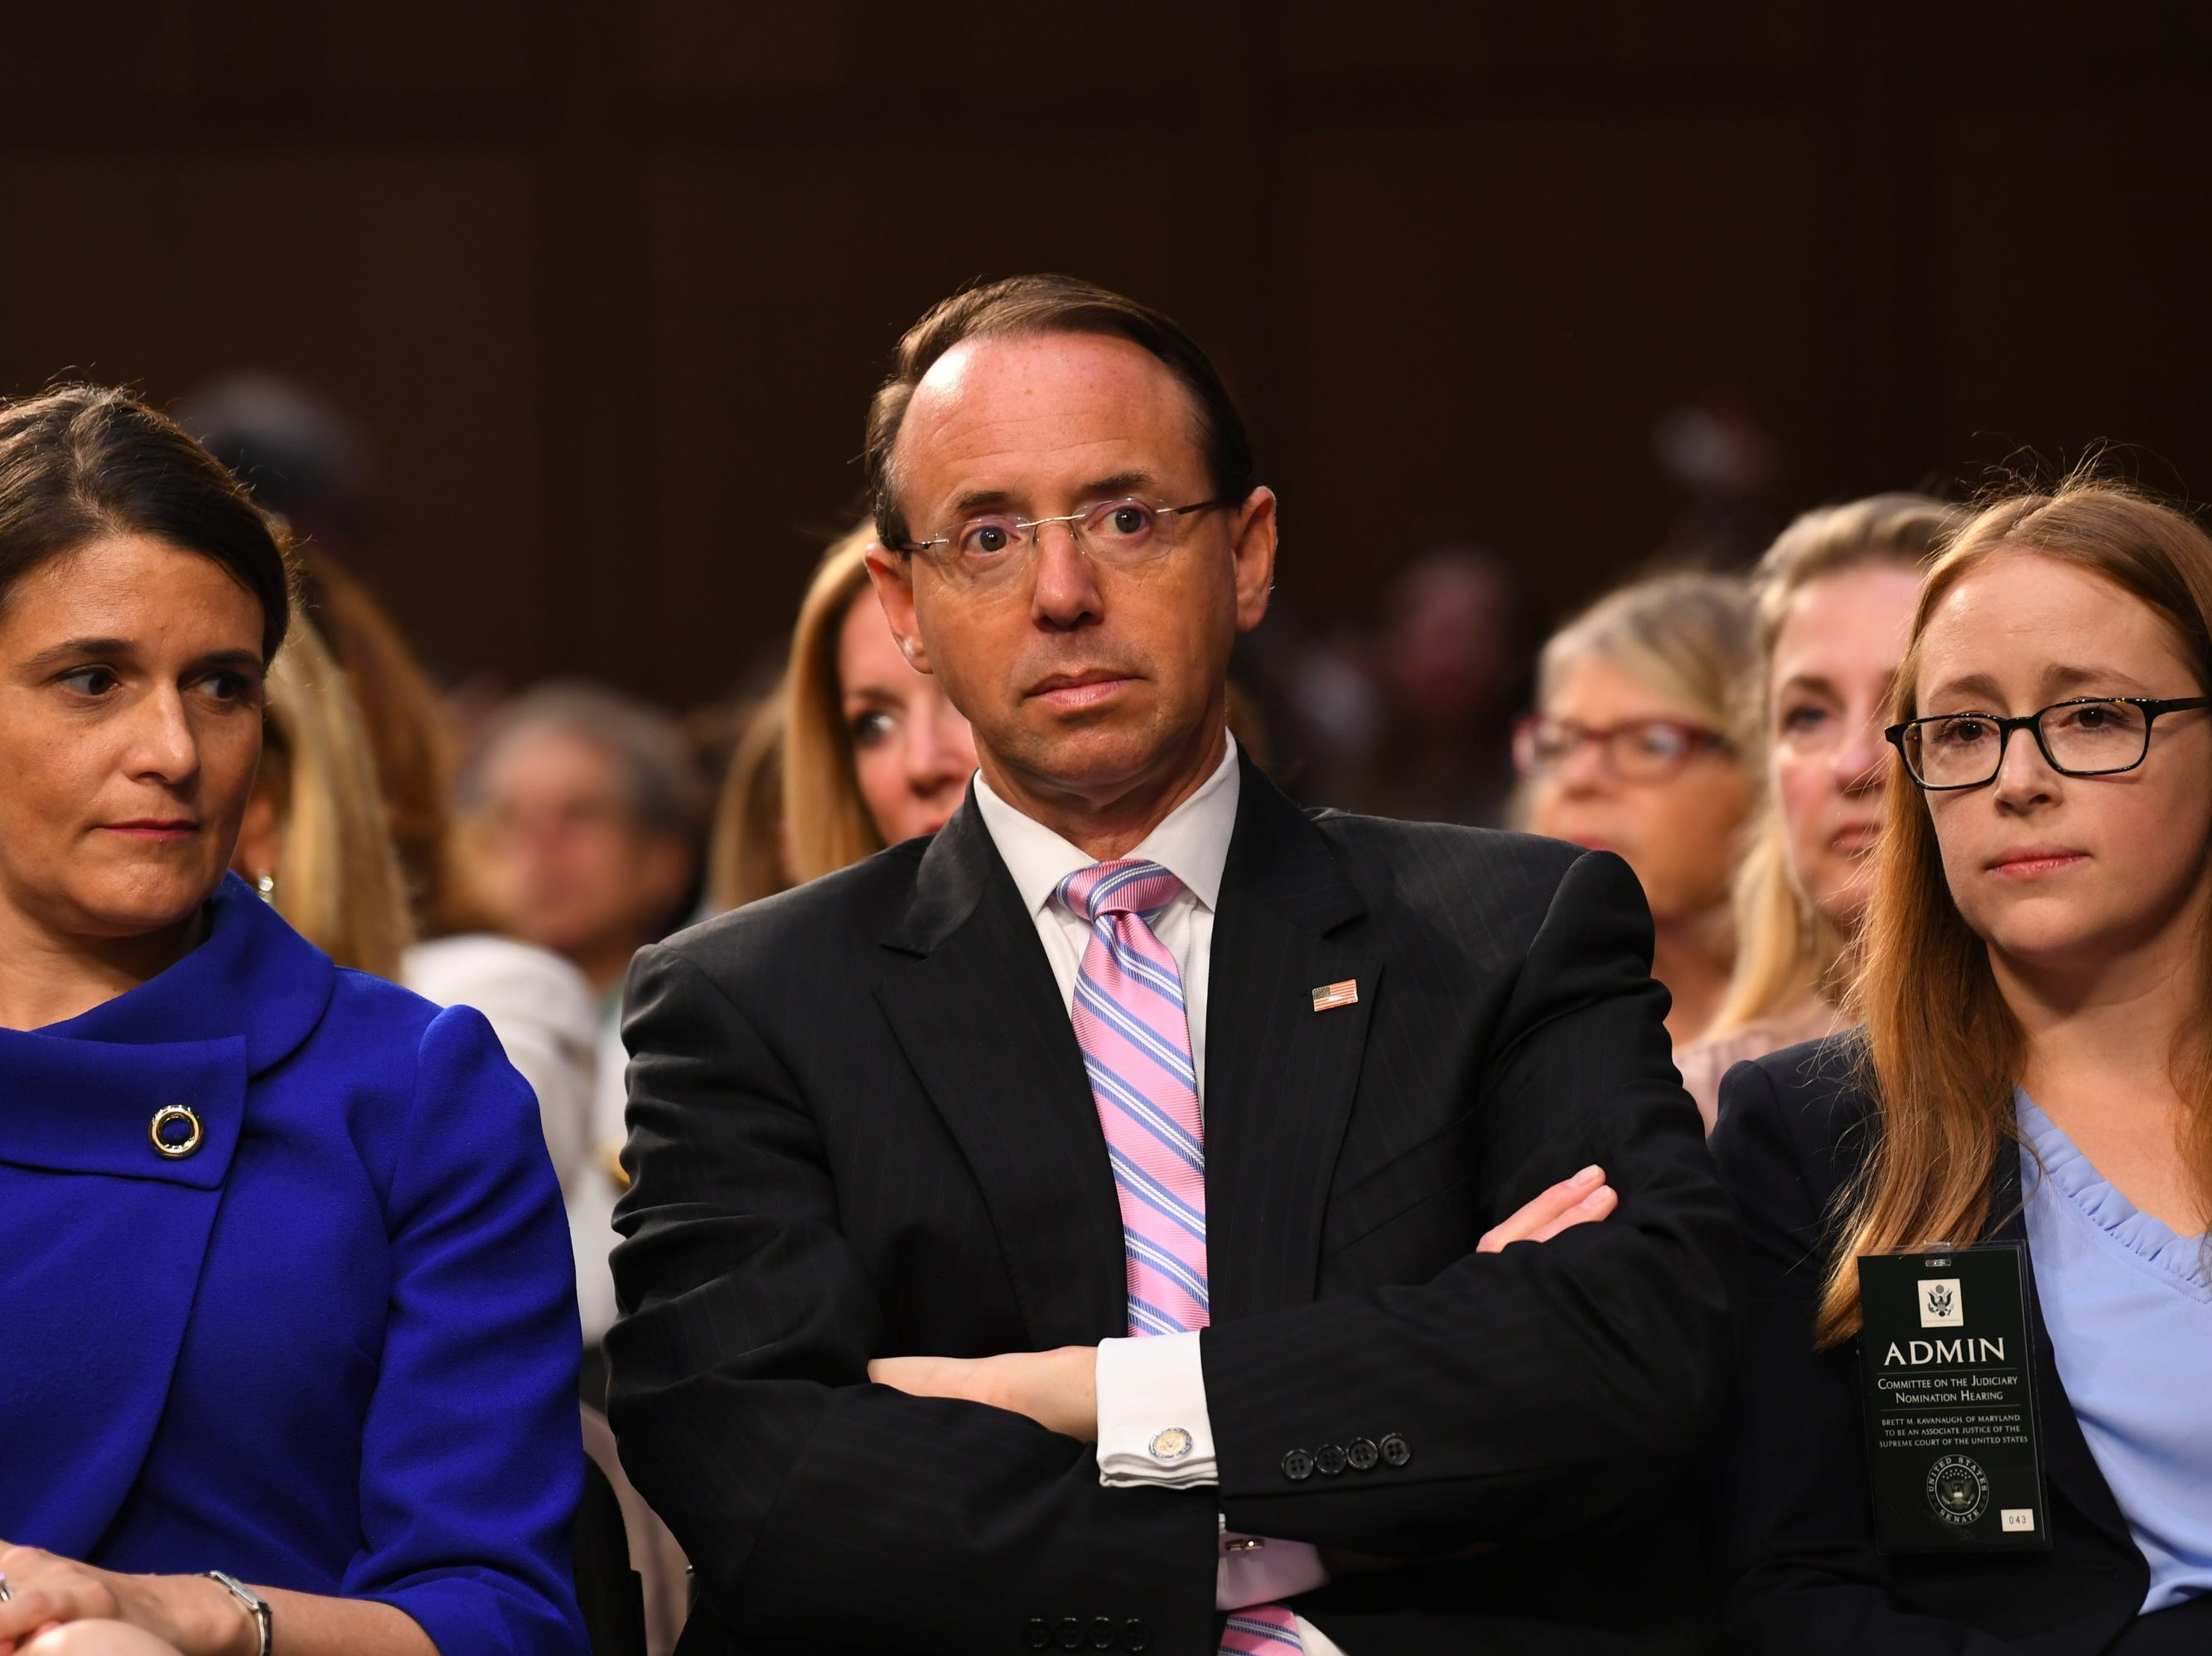 Deputy Attorney General Rod Rosenstein is seen during the confirmation hearing for Supreme Court Associate Justice nominee Brett Kavanaugh on Sept. 4, 2018 in Washington.